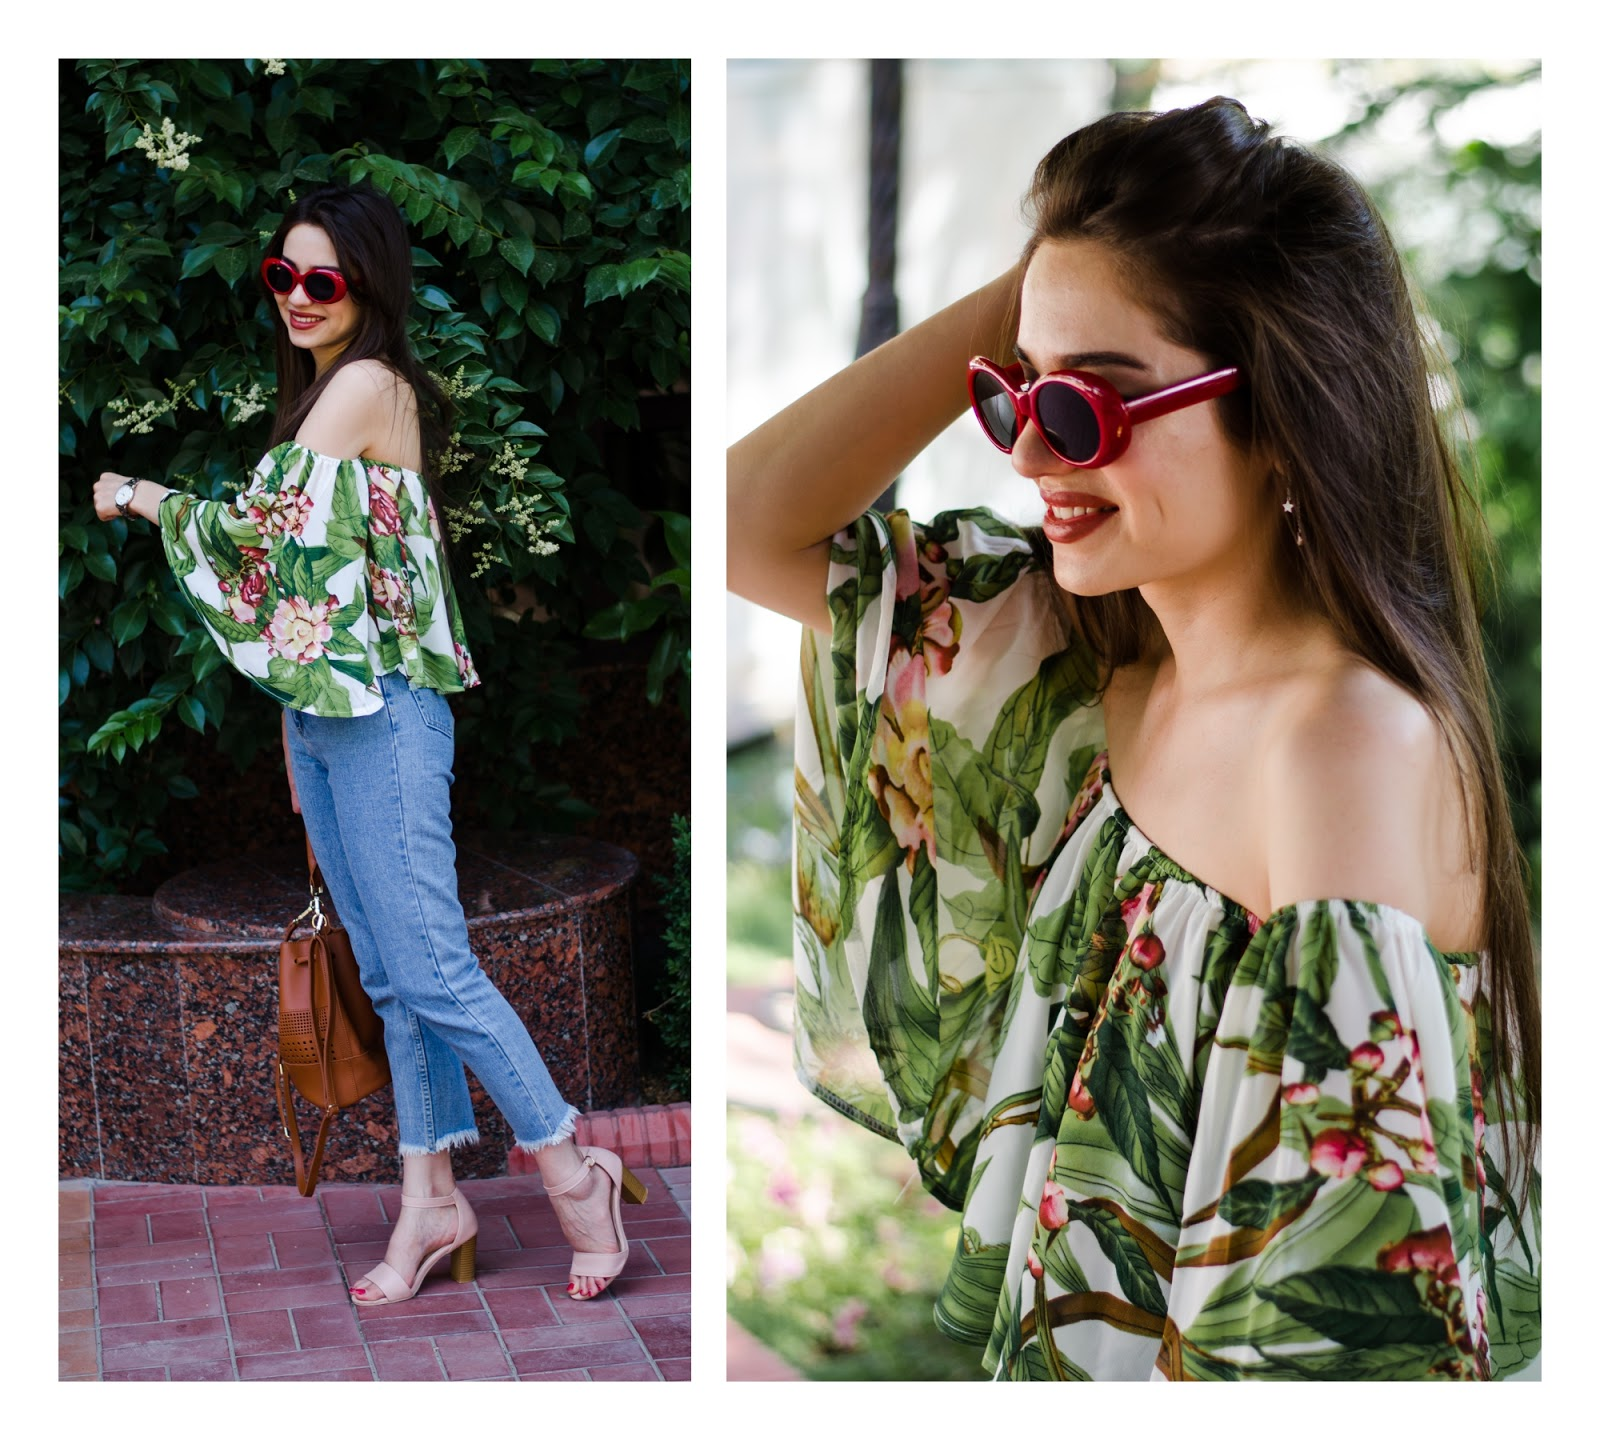 diyorasnotes diyora beta fashion blogger style outfitoftheday lookoftheday mom jeans offshoulders top tropical print how to style offtheshoulders bucket bag heeled sandals fashion outfit